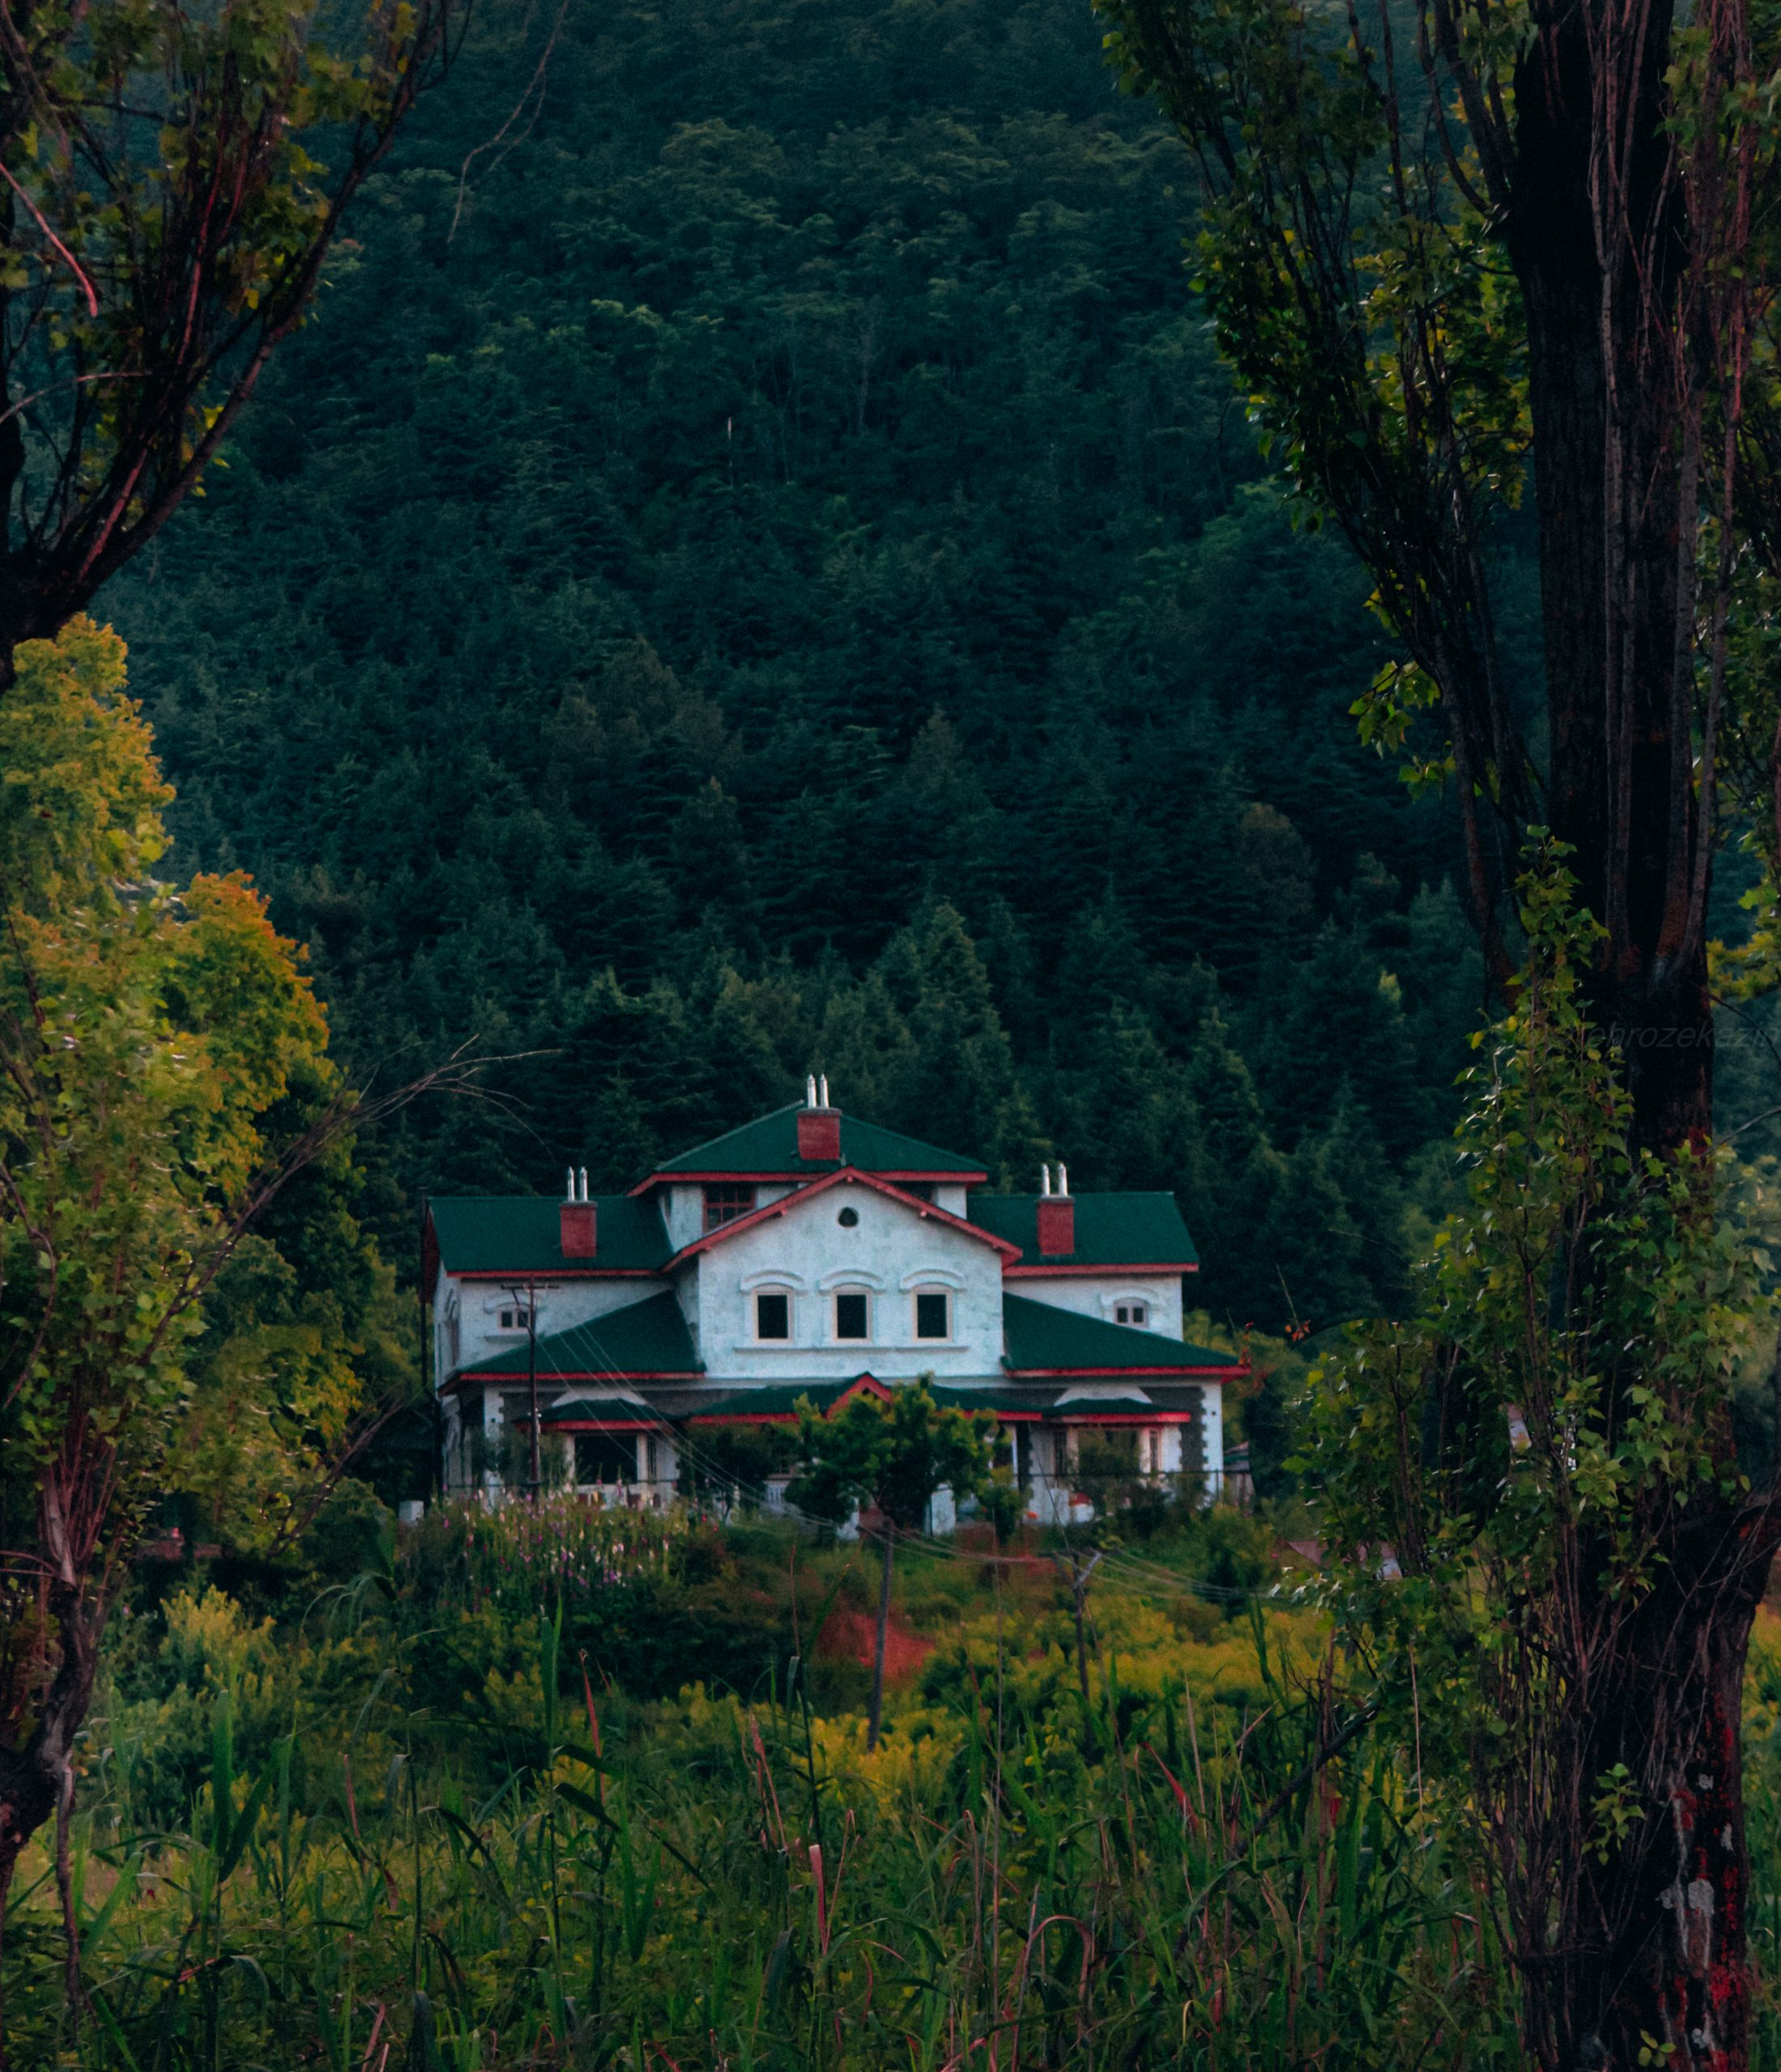 House amid a forest